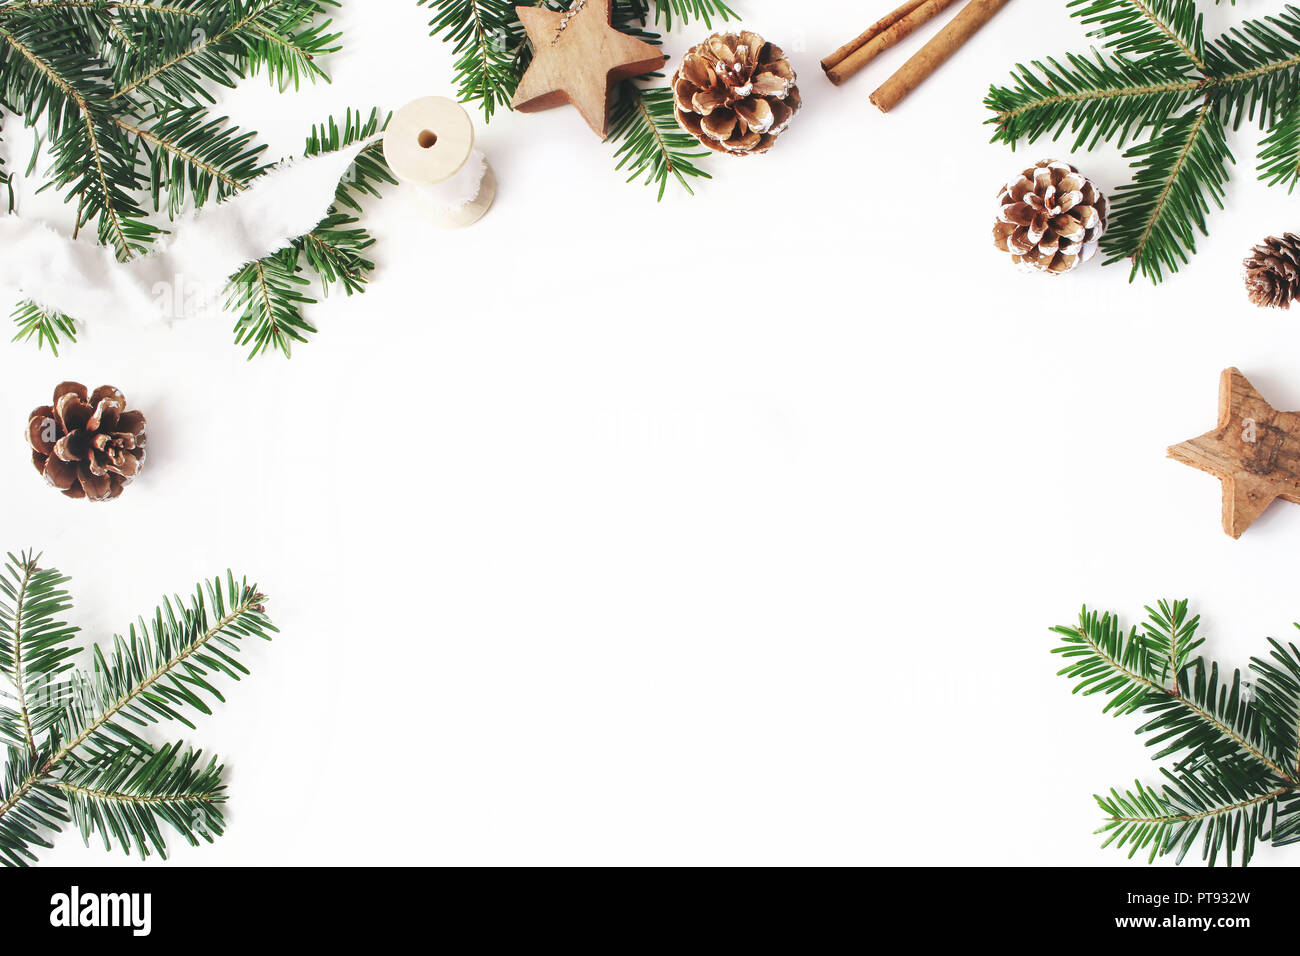 Christmas festive styled stock composition. Decorative floral frame ...